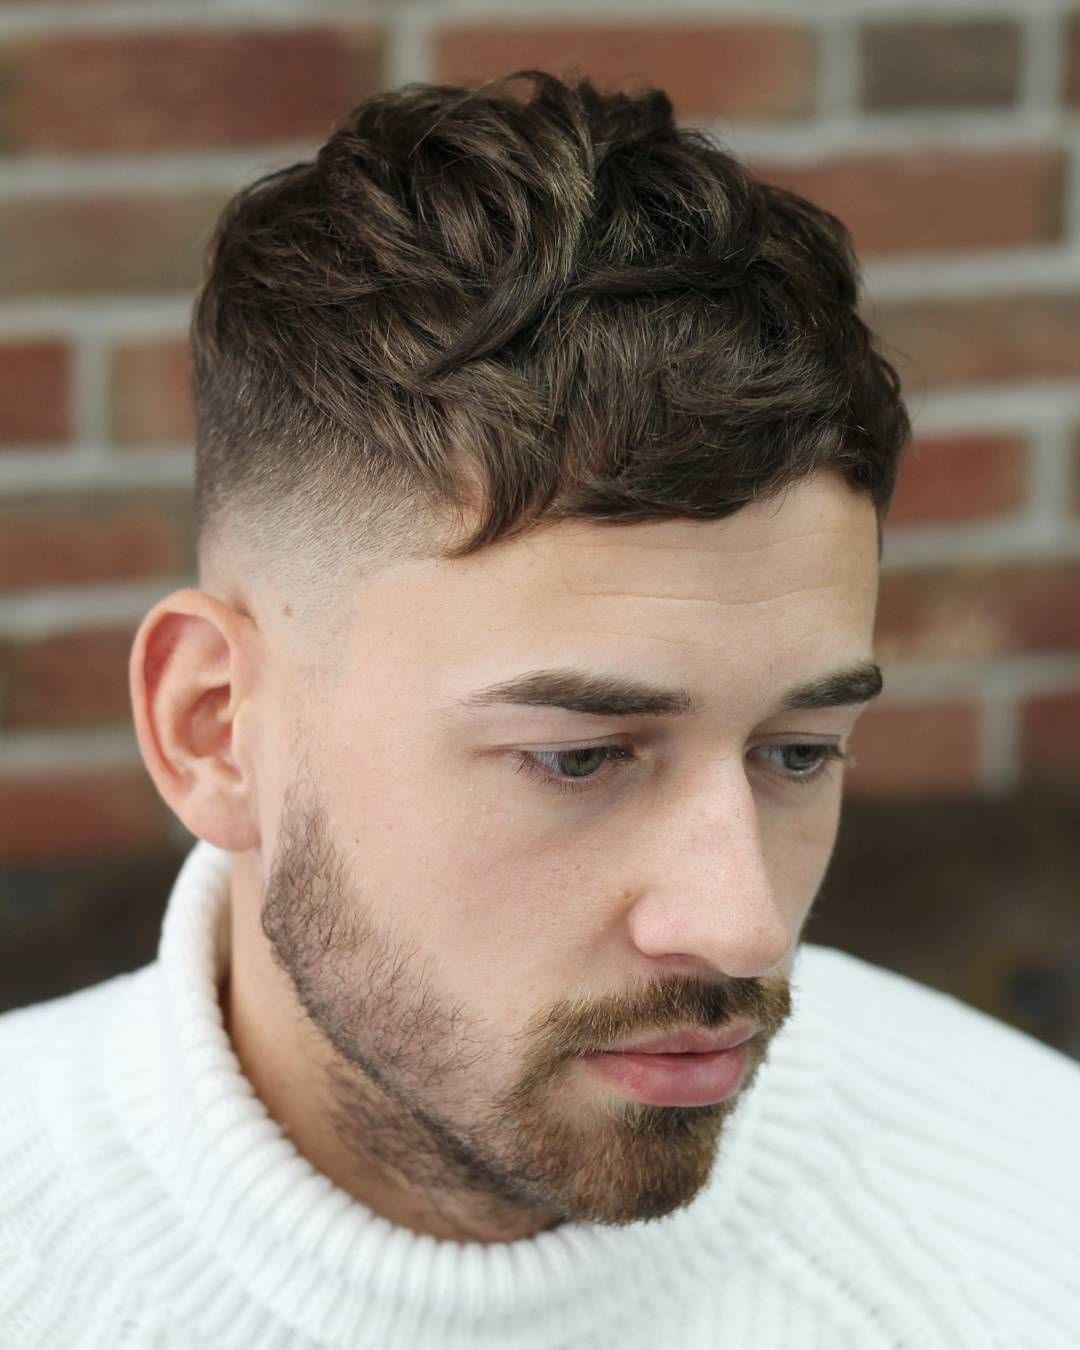 Short hairstyles 2017 for men - 100 Cool Short Haircuts For Men 2017 Update